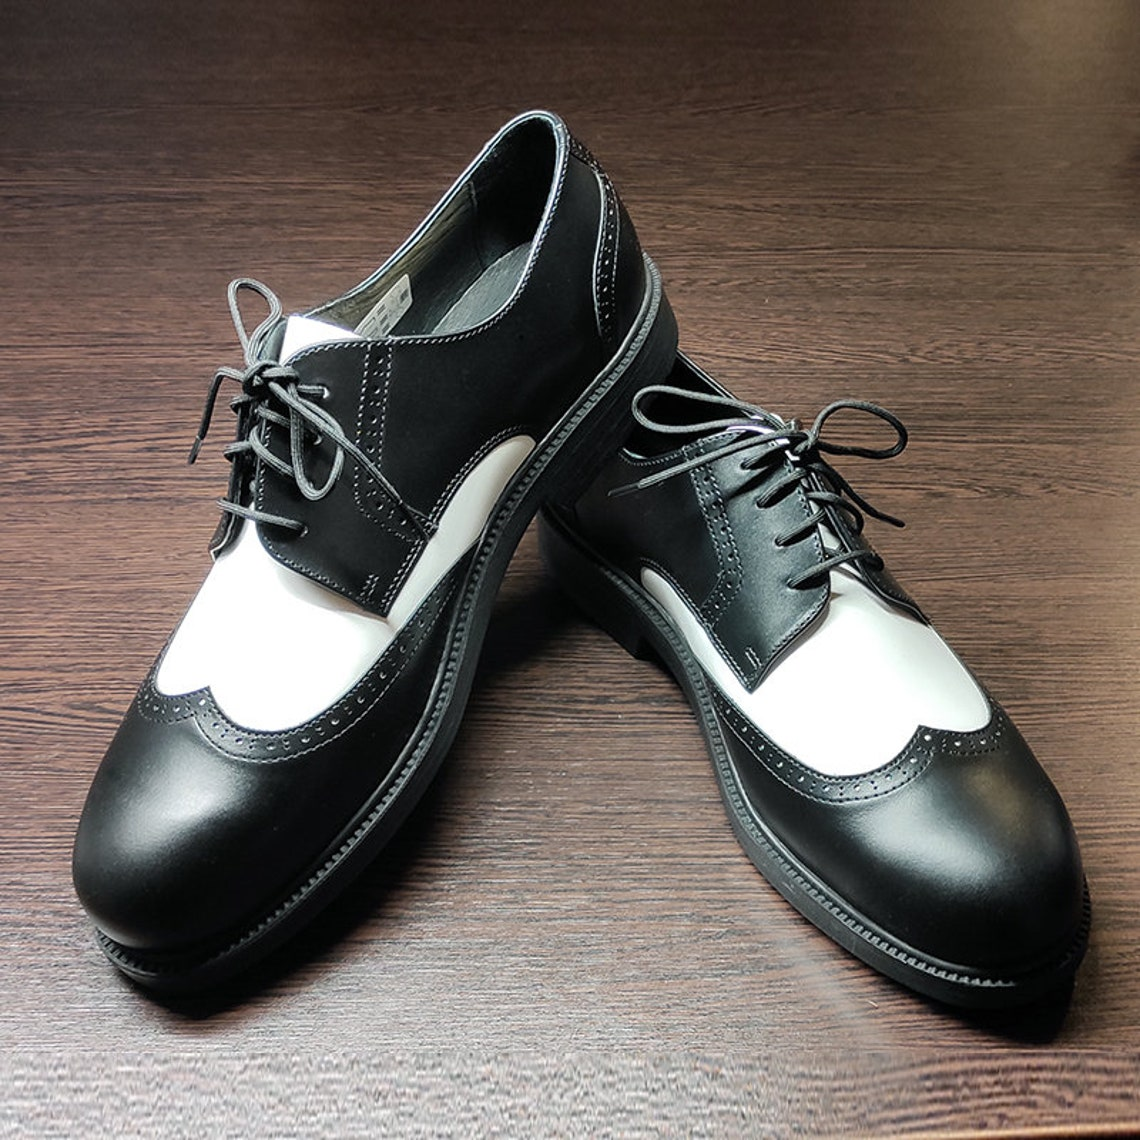 1950s Style Shoes | Heels, Flats, Boots Black and White Vintage Style Brogue Shoes Wingtip shoes - real leather $139.95 AT vintagedancer.com